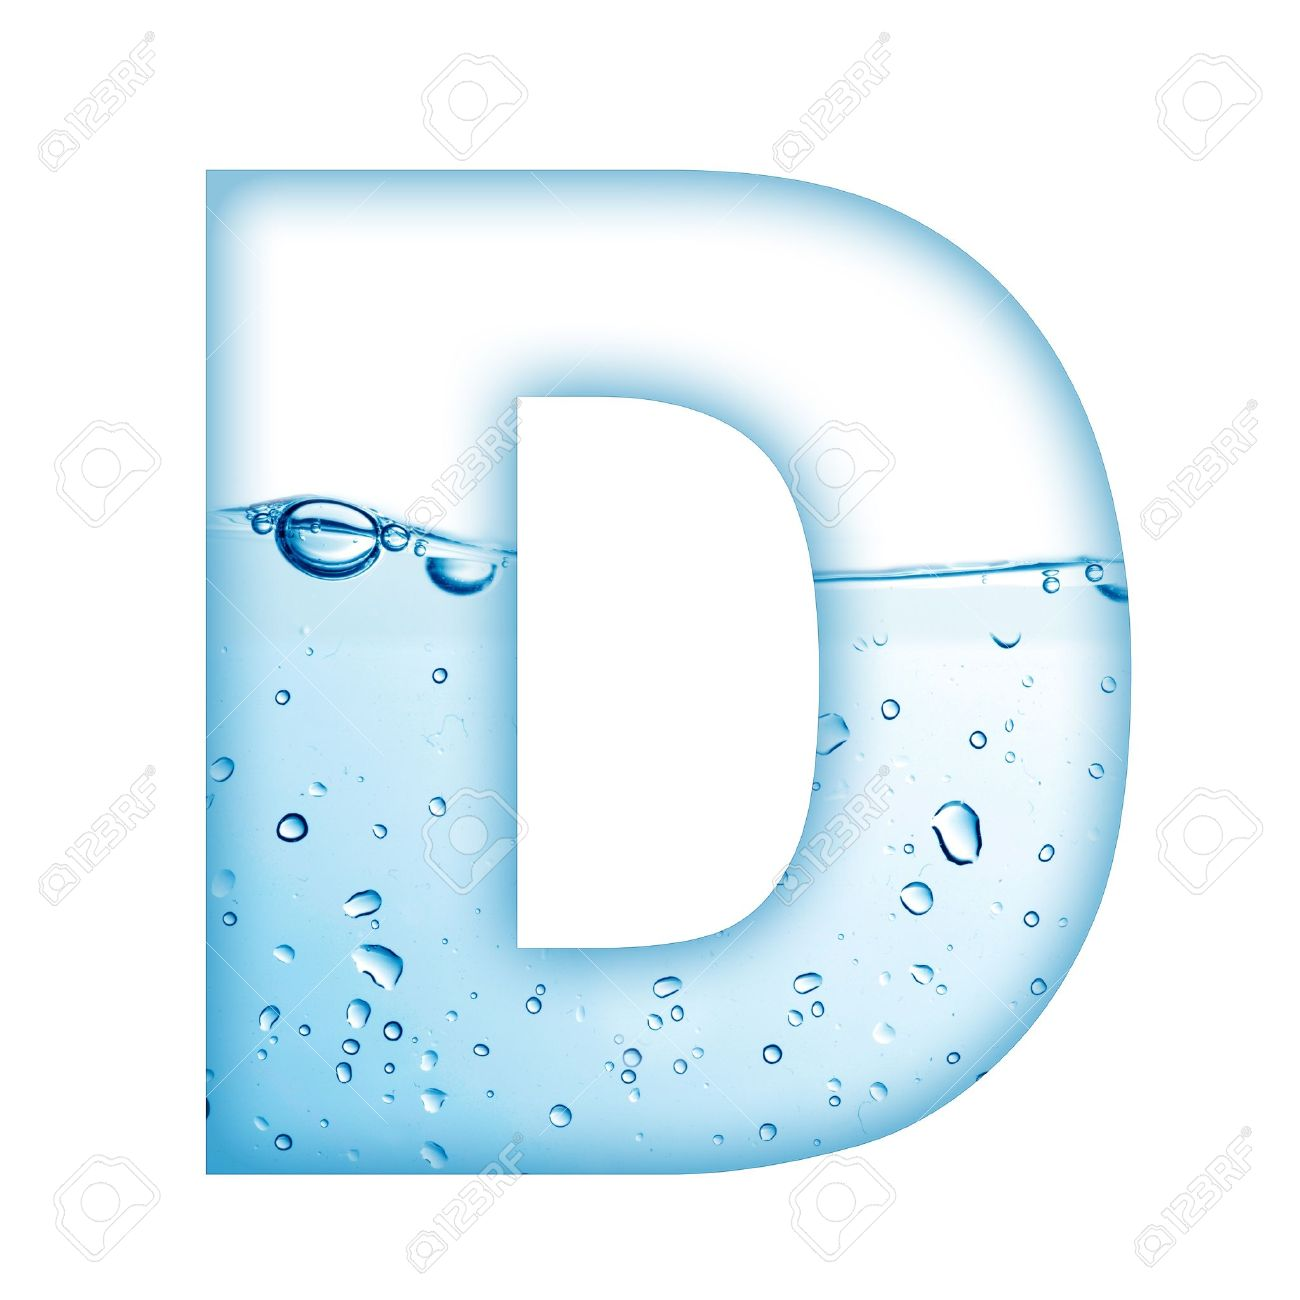 Alphabet Letter Made From Water And Bubble D Stock Photo